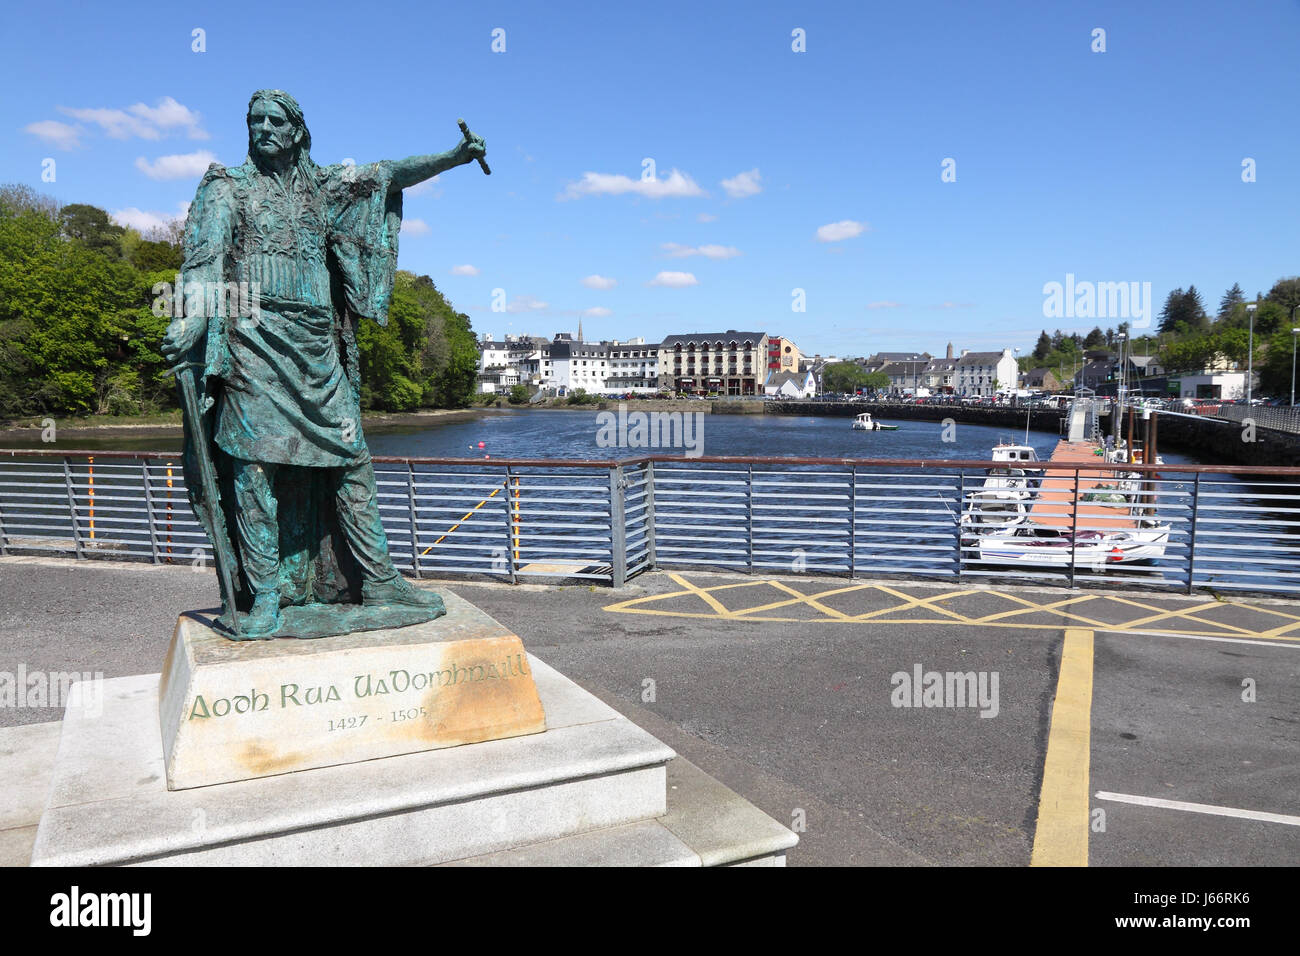 Bronze statue of Red Hugh O'Donnell on Donegal pier, Ireland - Stock Image